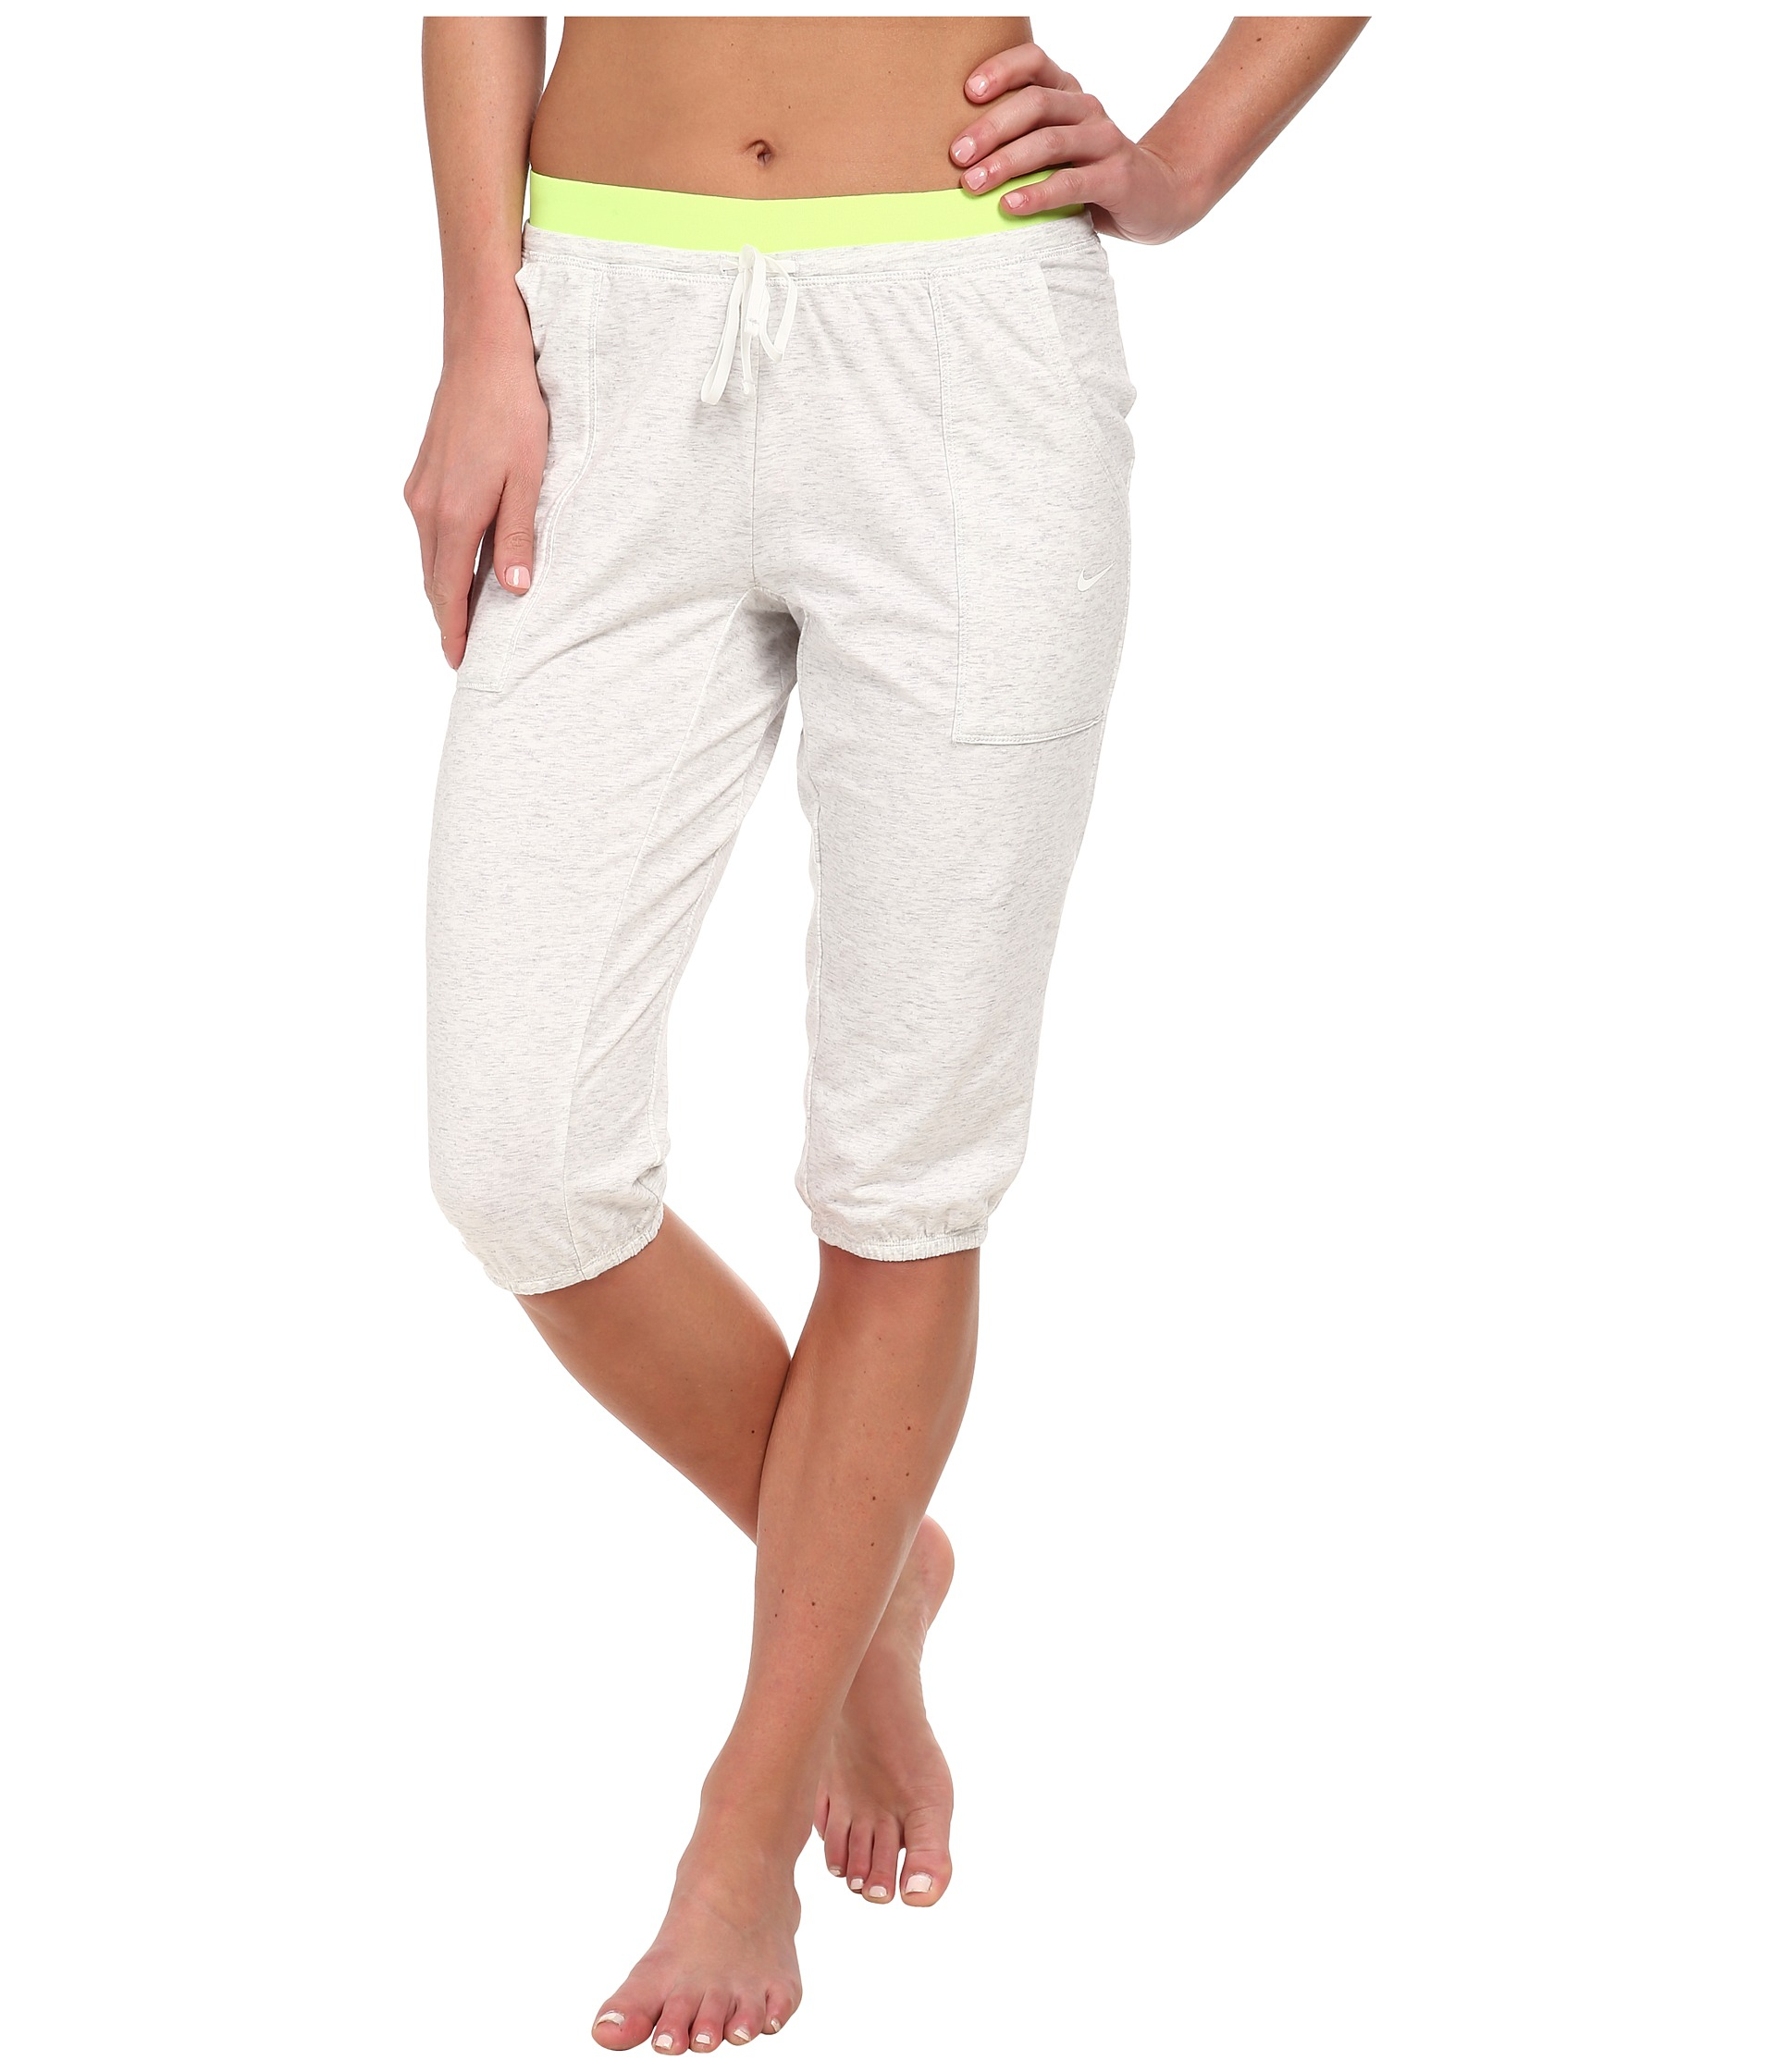 Nike Womens Lightweight Obsessed Training Capri Birch Heather/Volt/White - Pants